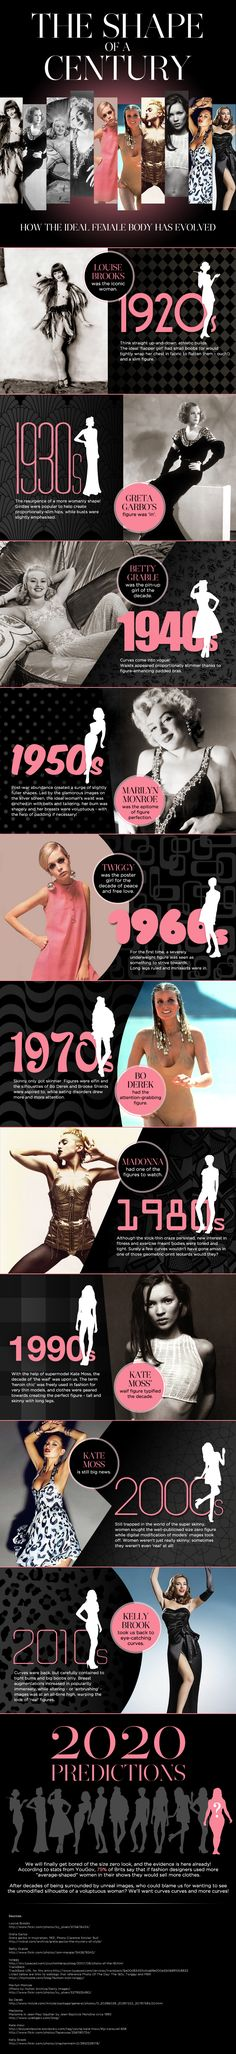 "How Have Women's Bodies Evolved? - The online fashion retailer, Marisota, created this infographic that takes a look at the evolution of culture's definition of the ""perfect"" women. The infographic ti"